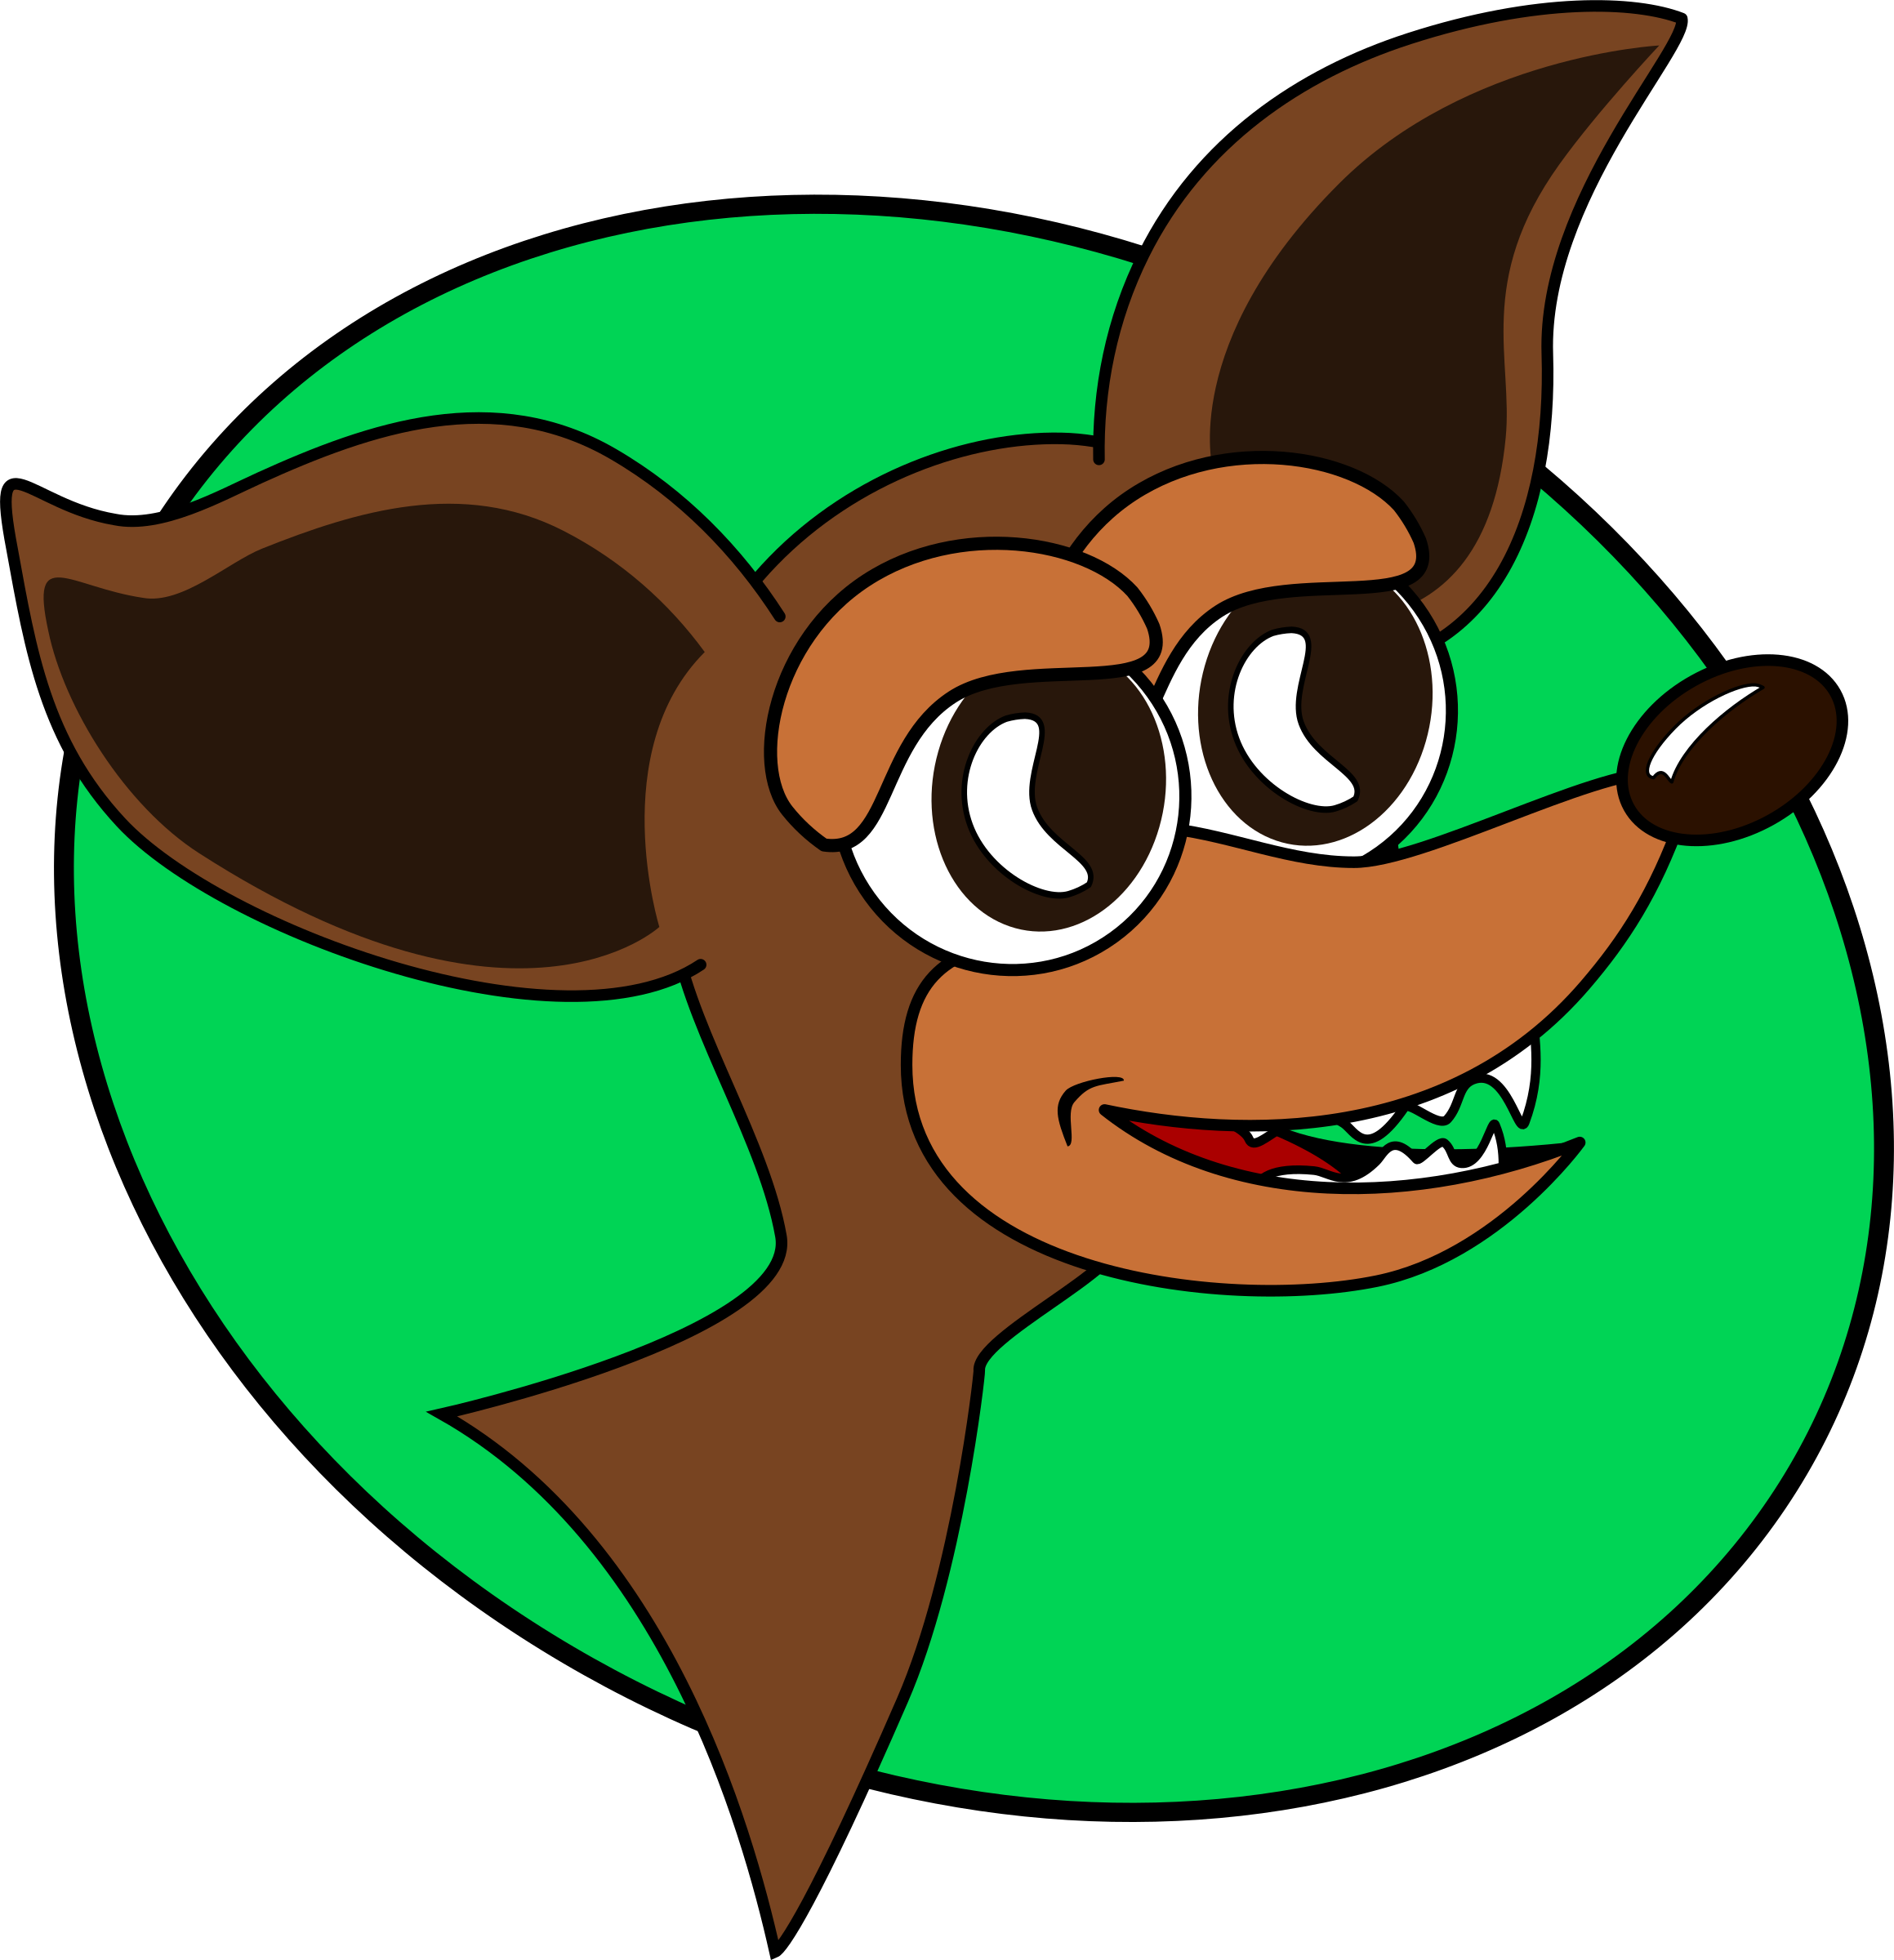 Cartoon Chihuahua by VexStrips